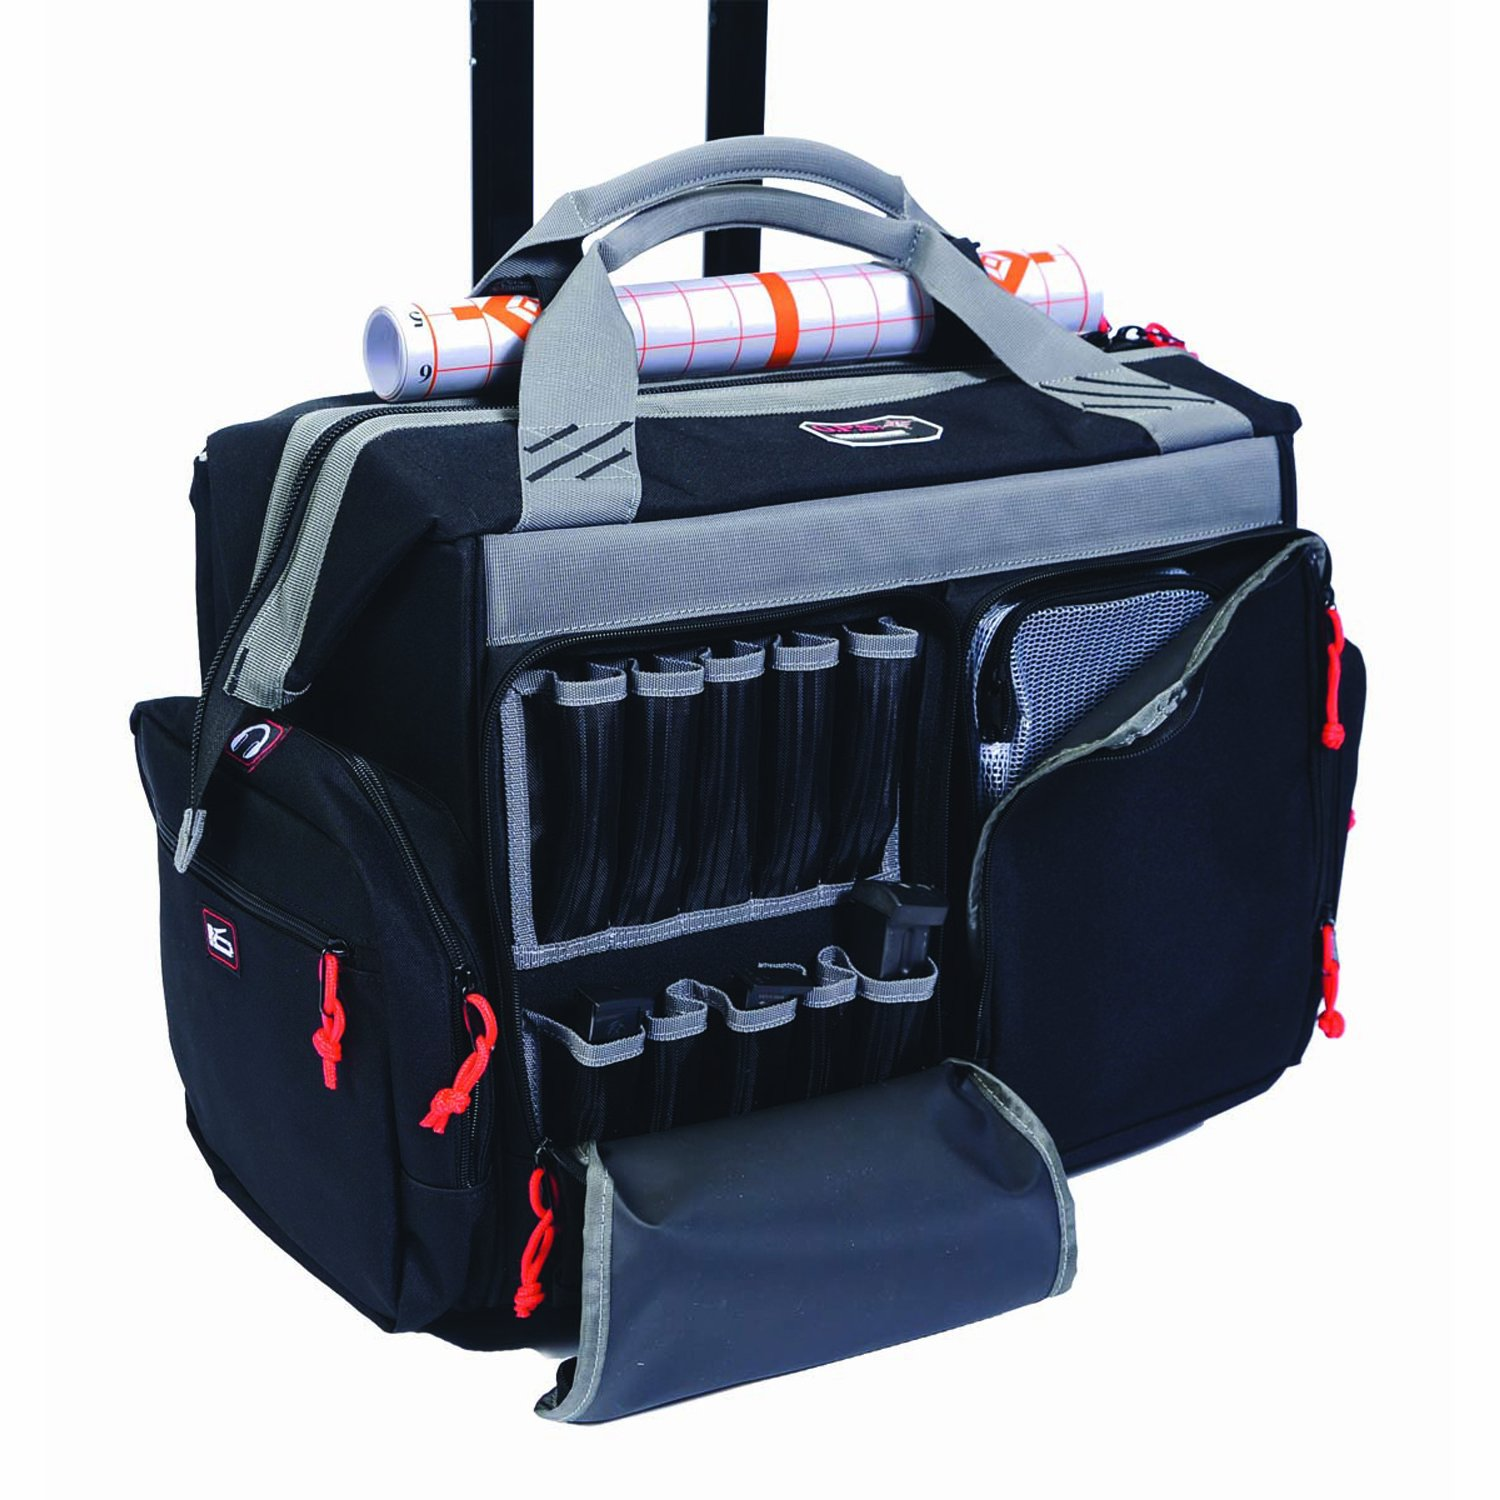 Top 10 Best Range Bag Reviews in 2020 7